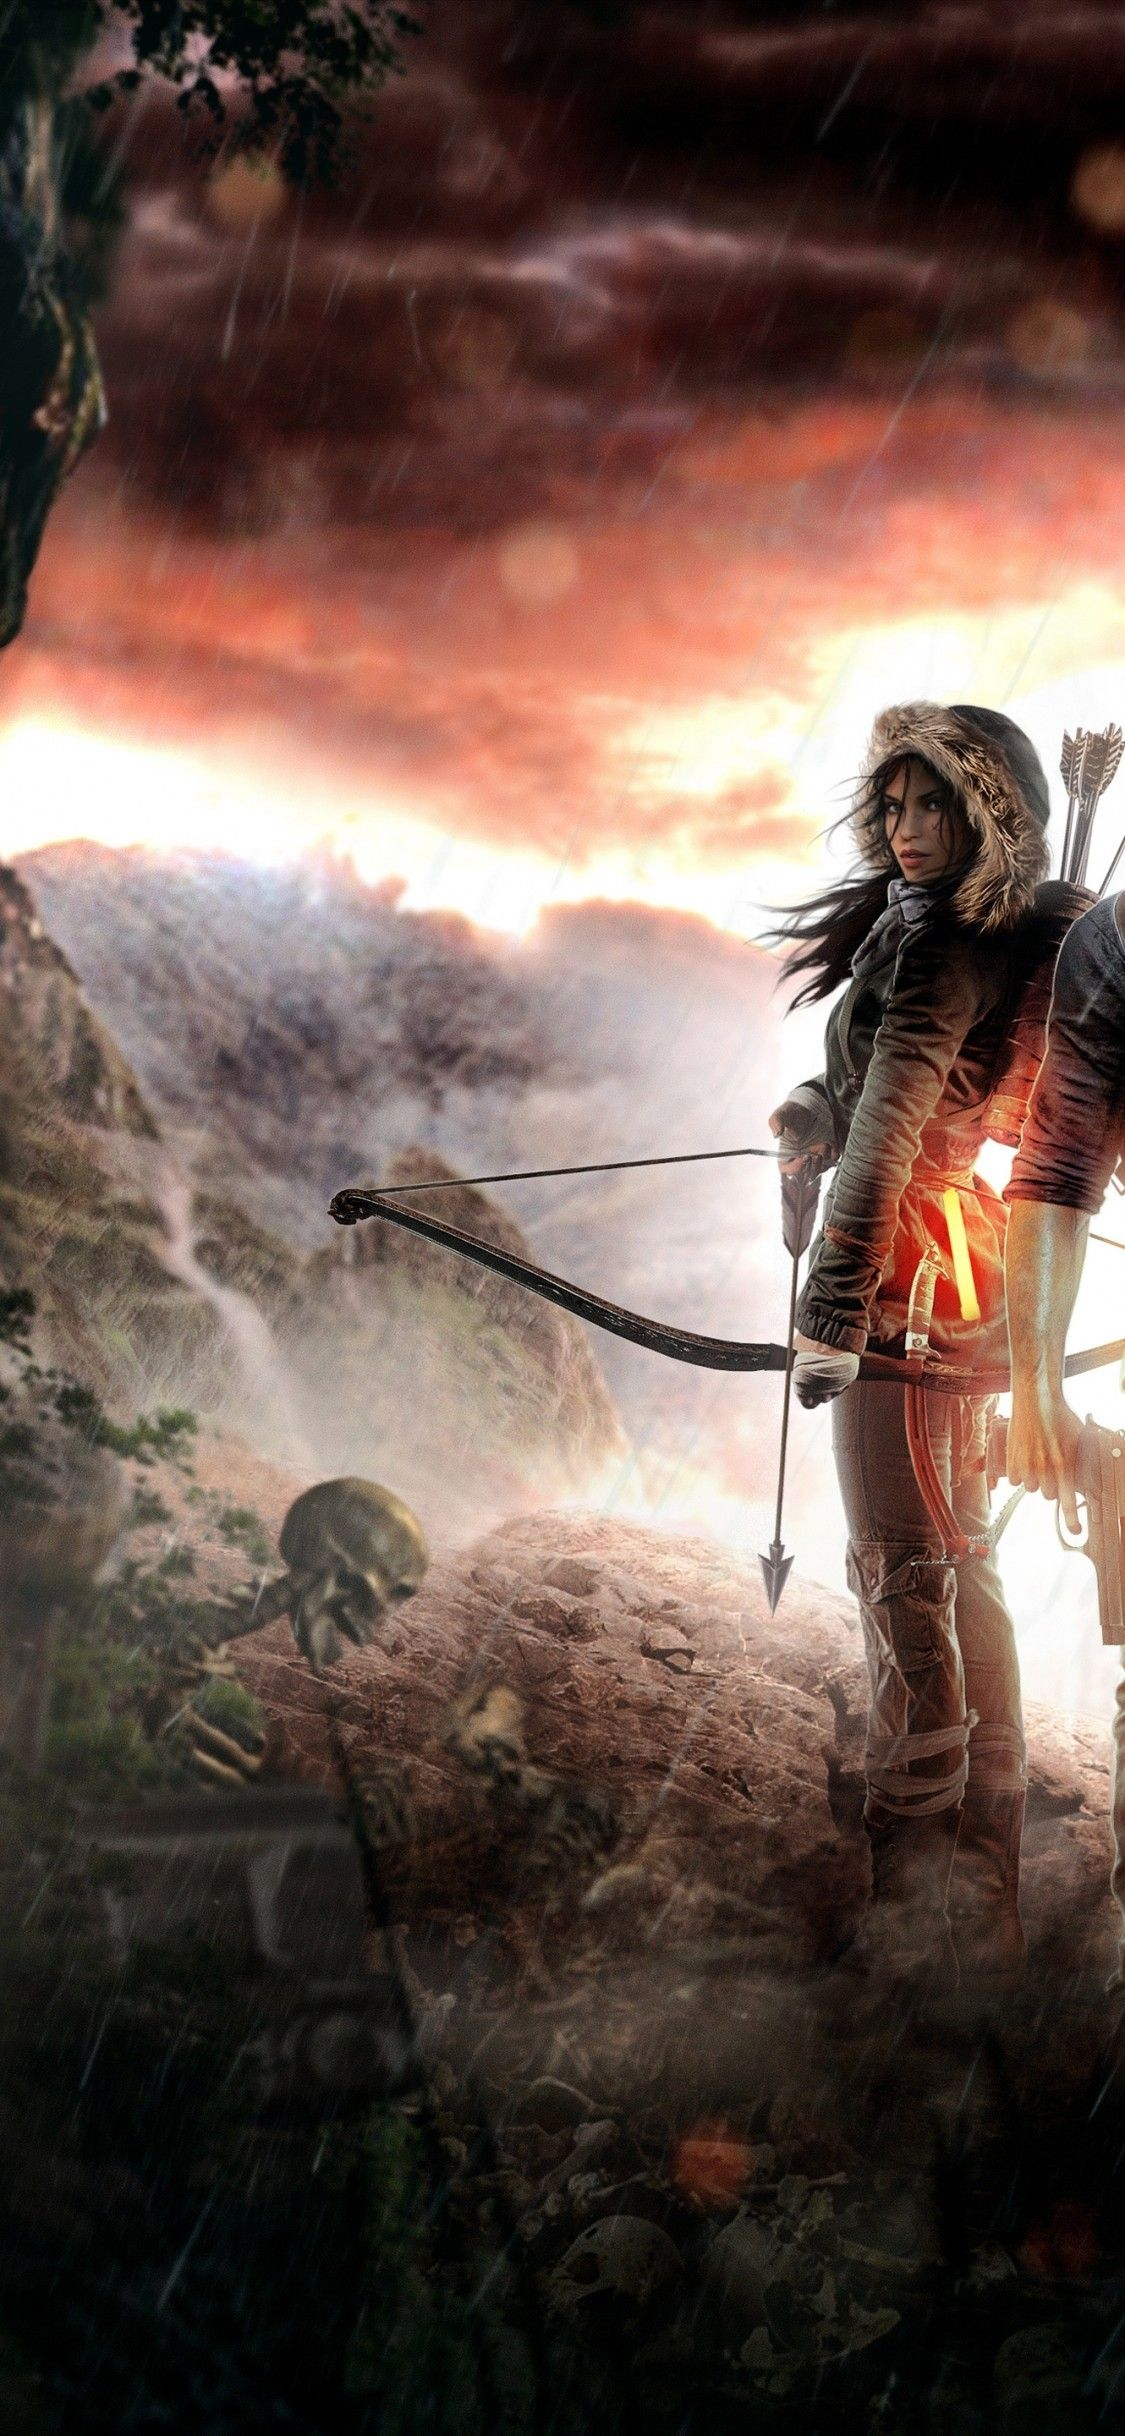 1125x2436 Download 1125x2436 Rise Of The Tomb Rider, Uncharted 4, Lara ...